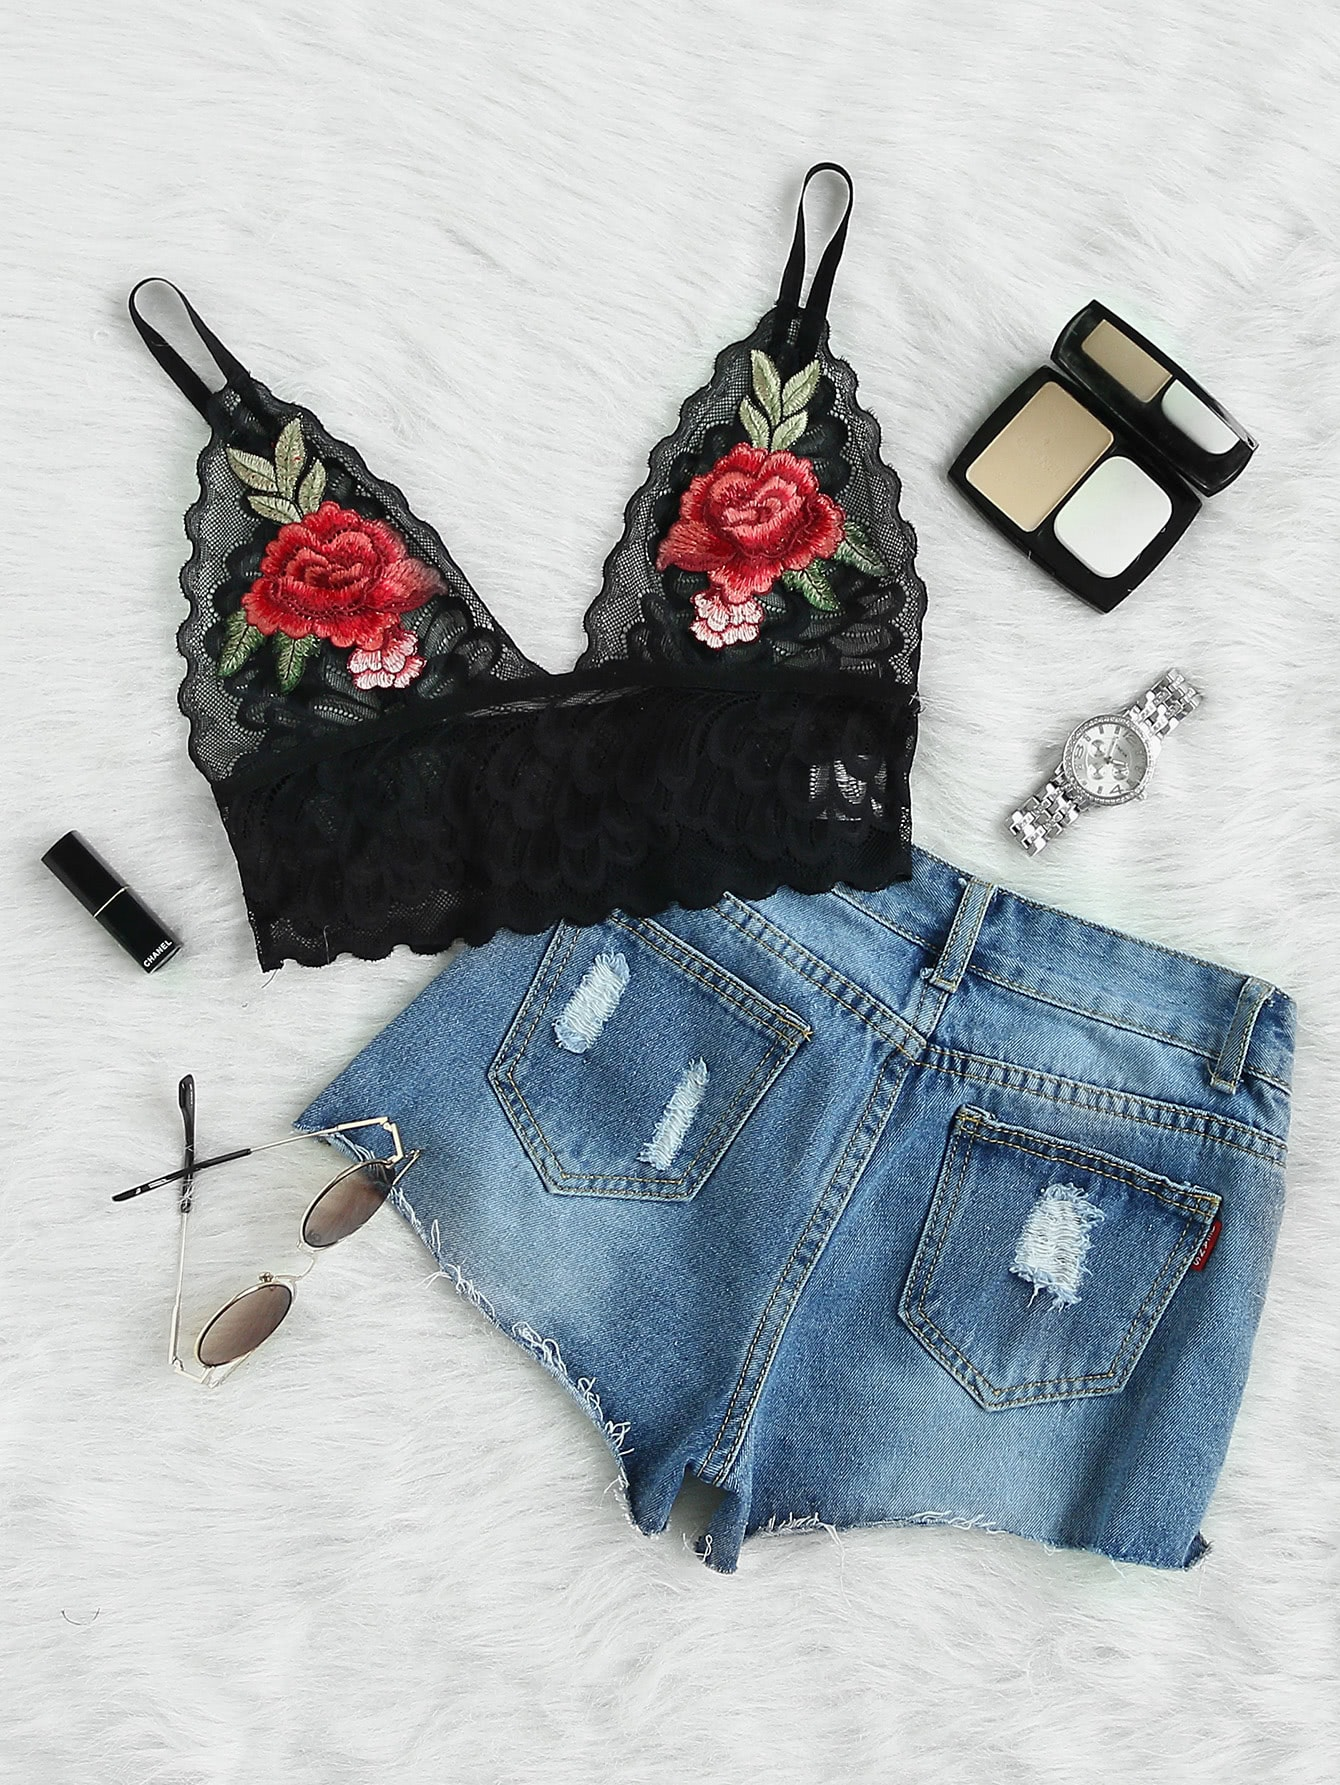 Embroidered Flower Patch Wide Band Comfy Bralette conception of patch antenna at wide band